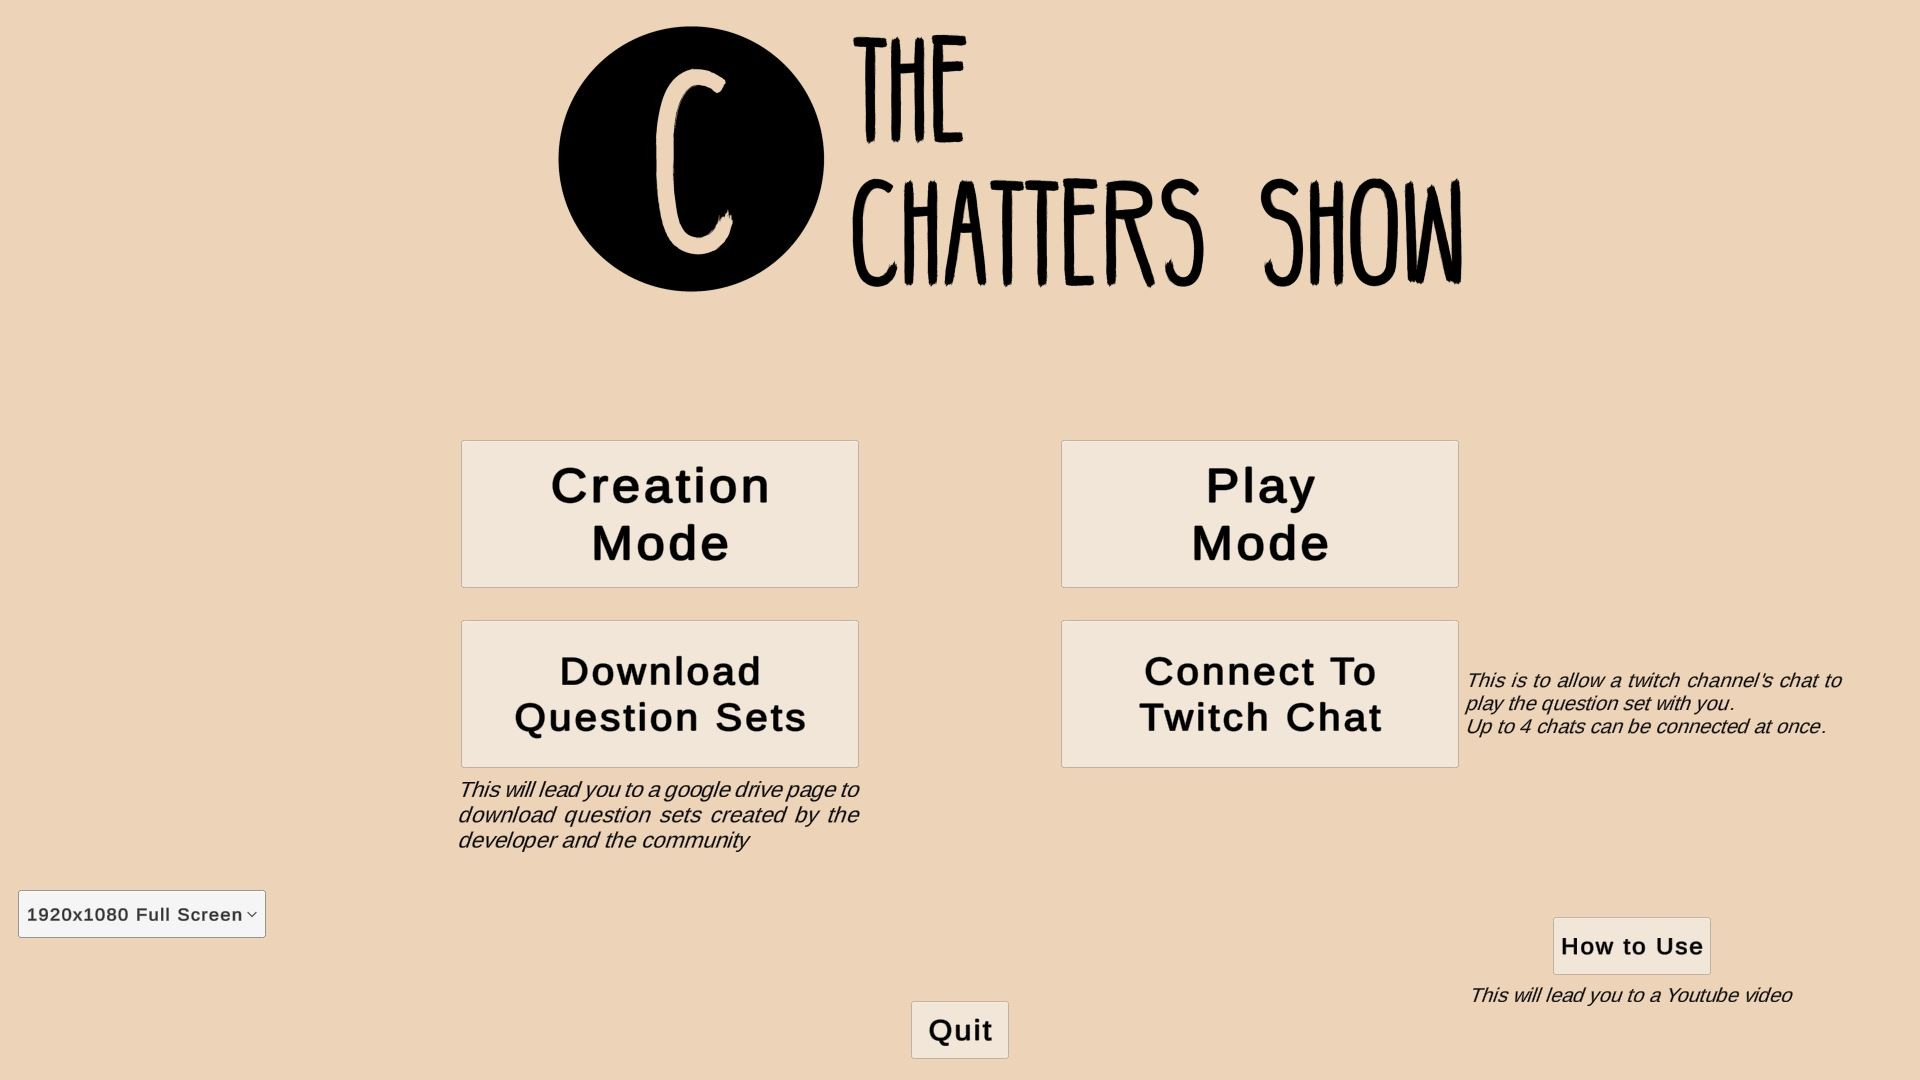 The Chatters Show screenshot